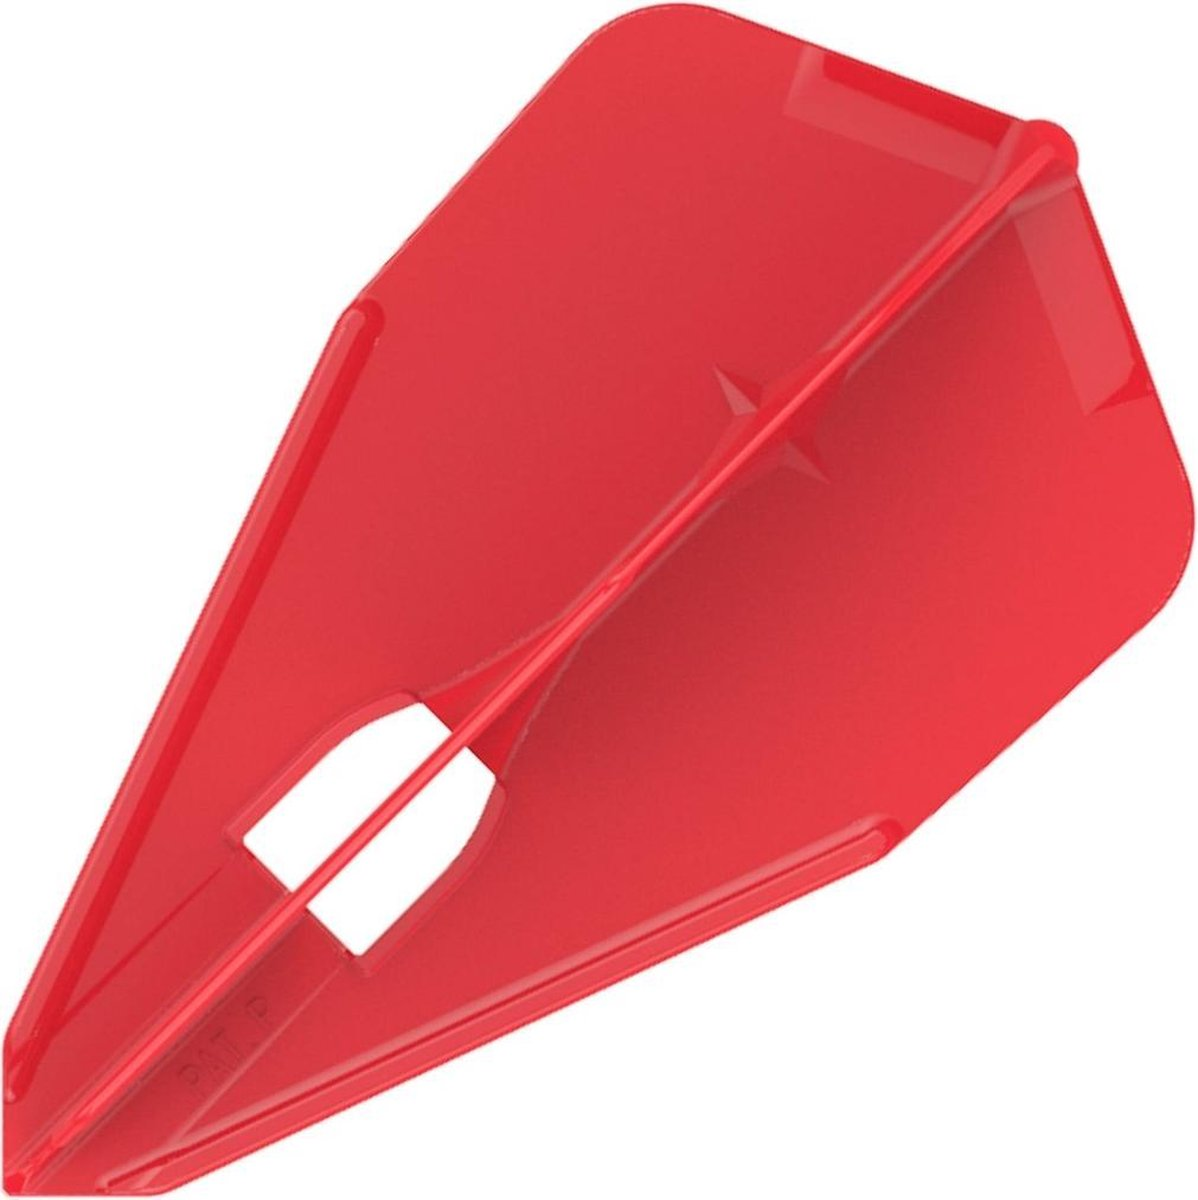 L-Style Champagne Bullet Flights Rood